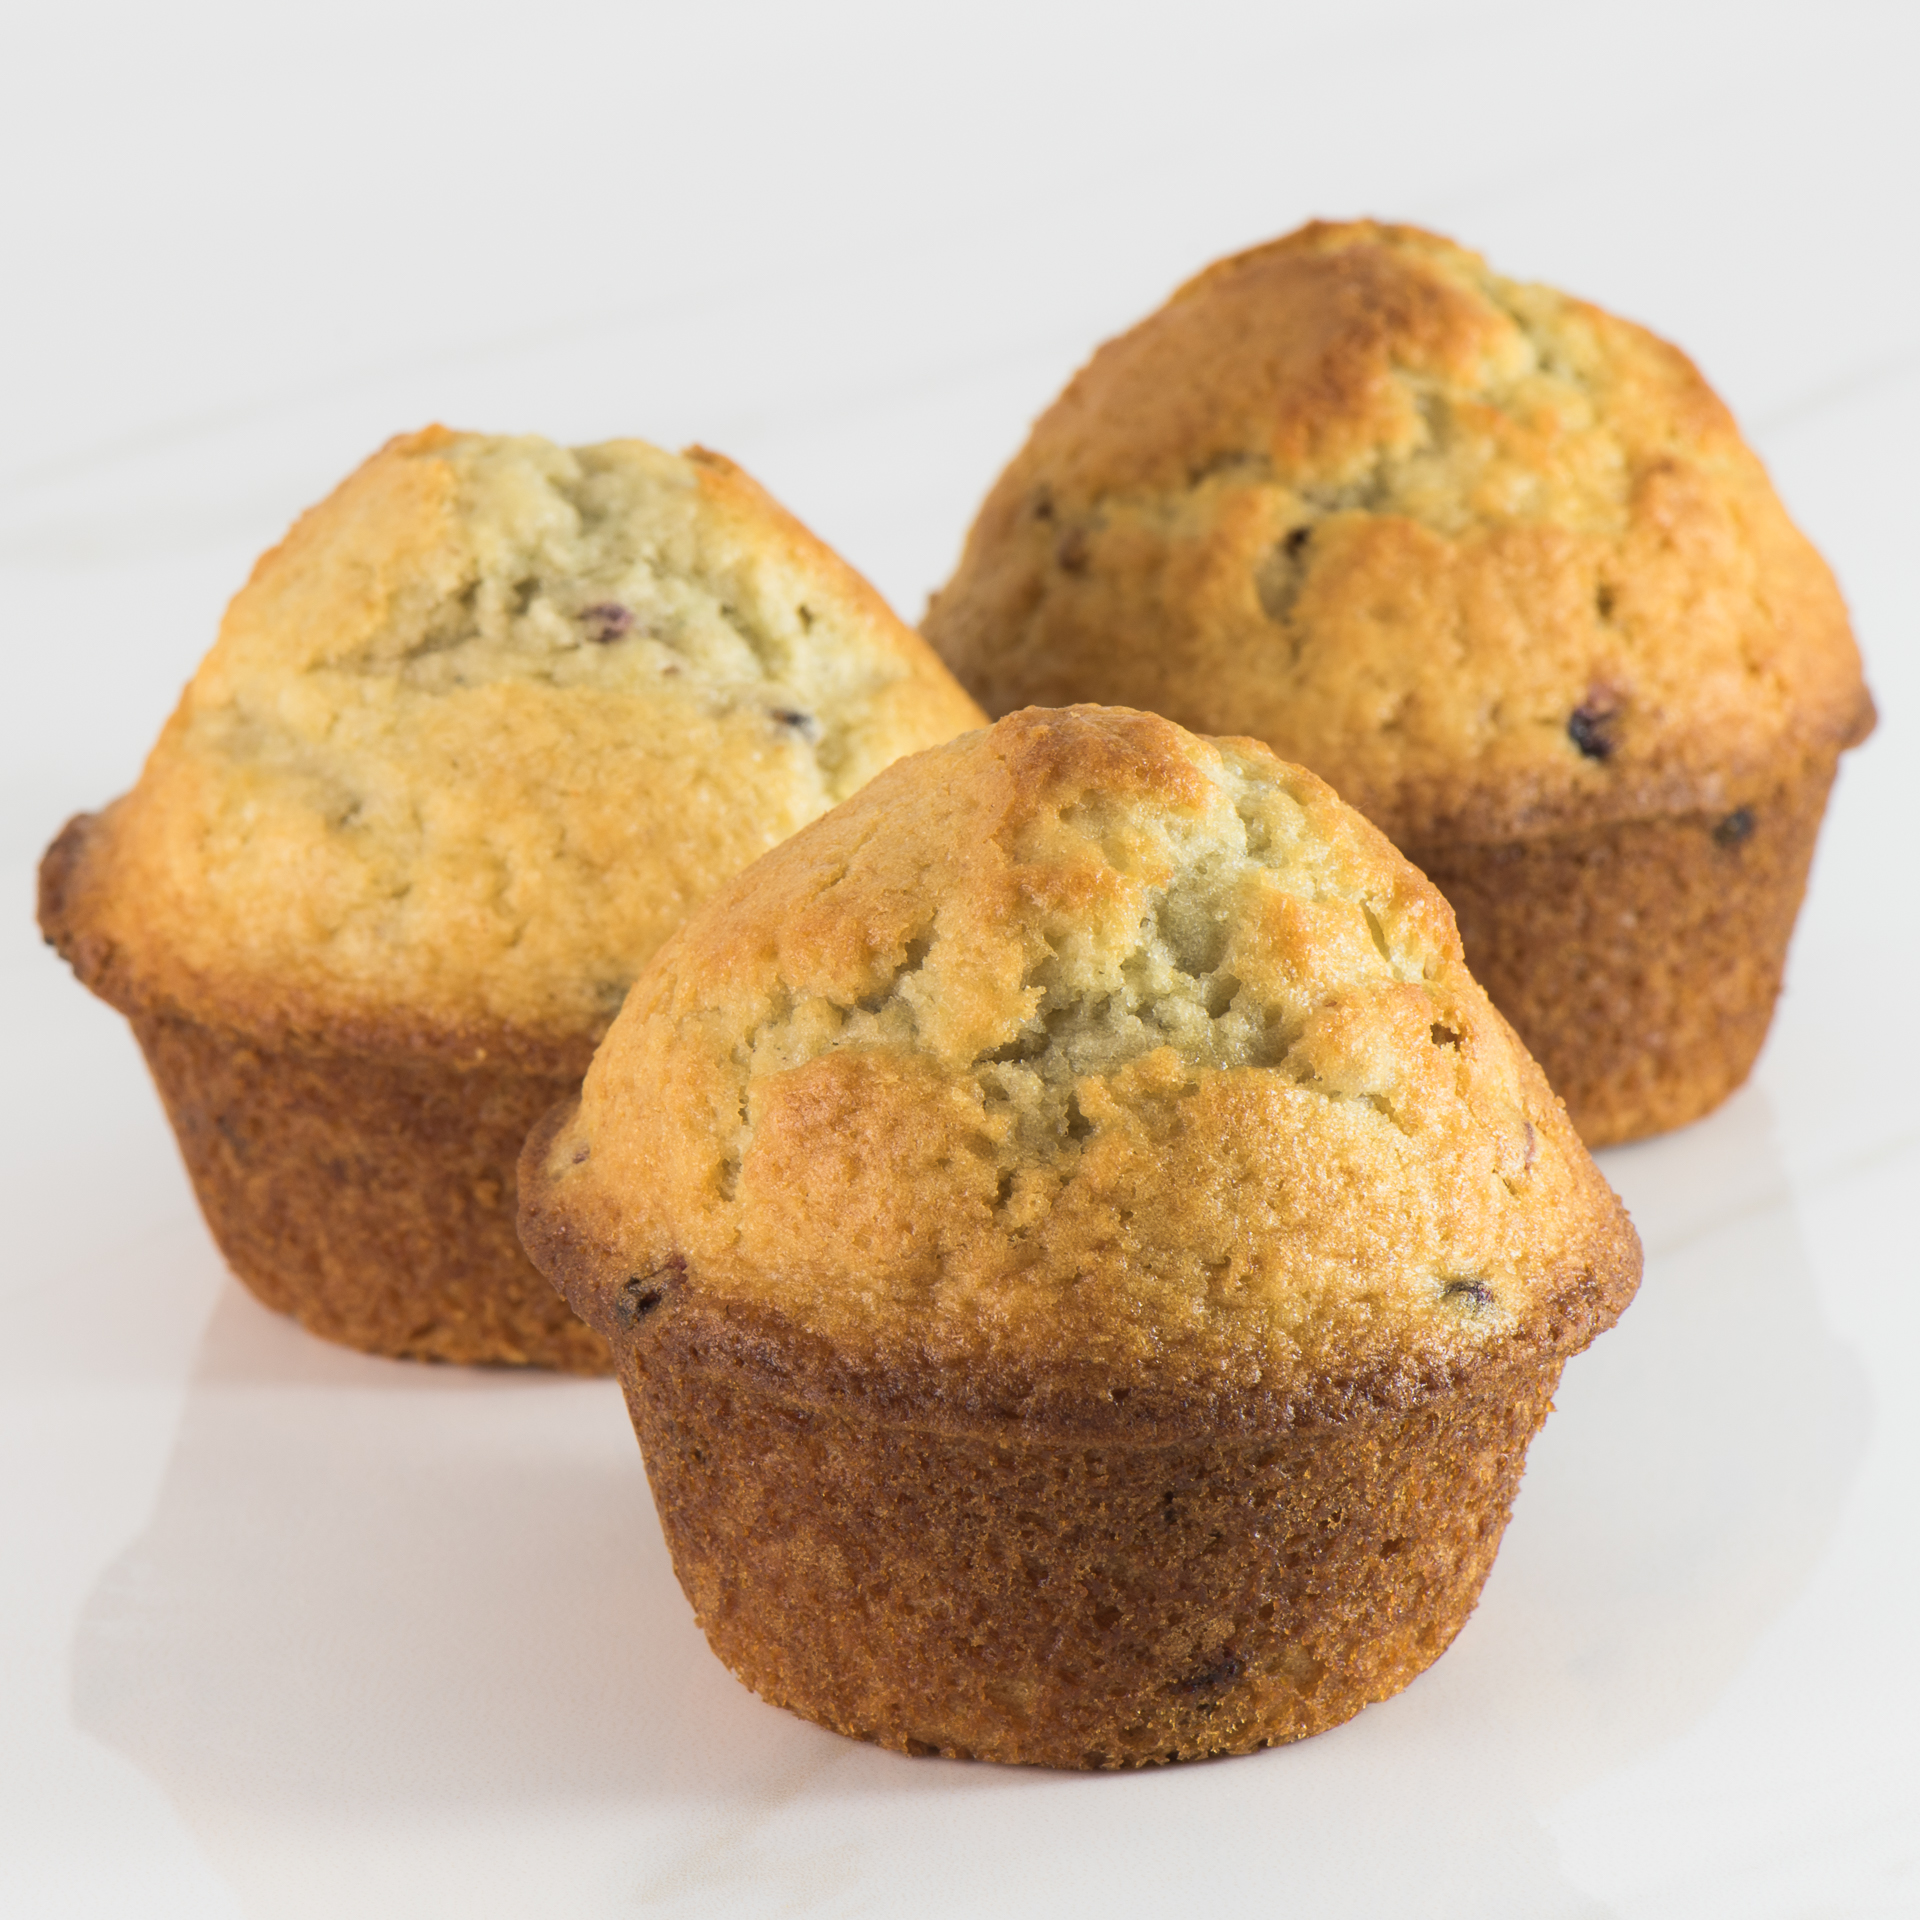 Kathie's Bakery Muffin Baking Mixes